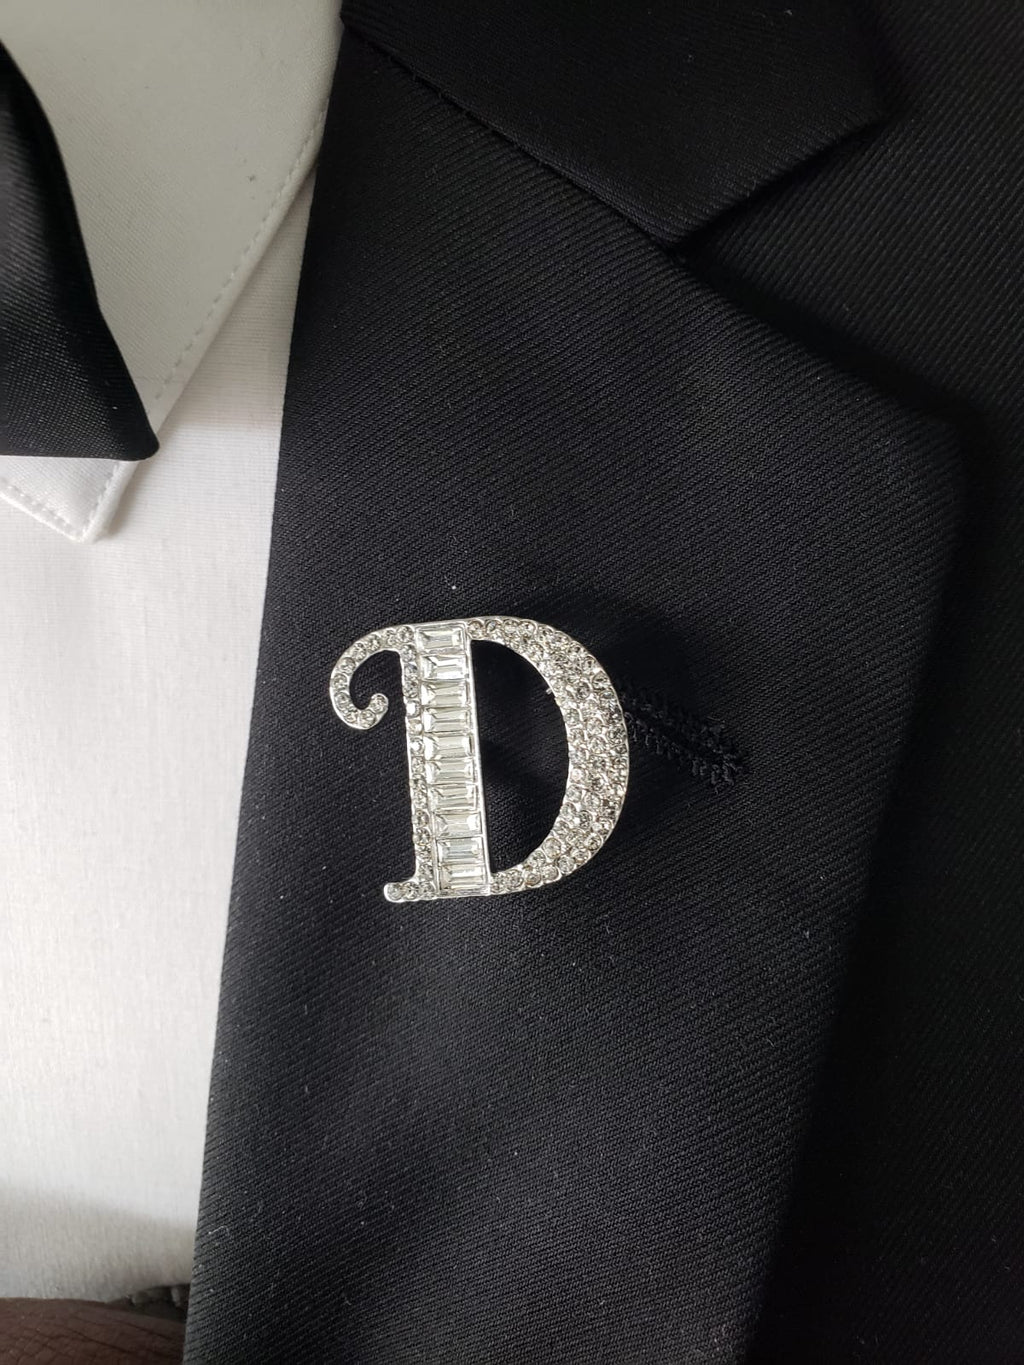 "Blinged out ""D"" lapel pin"